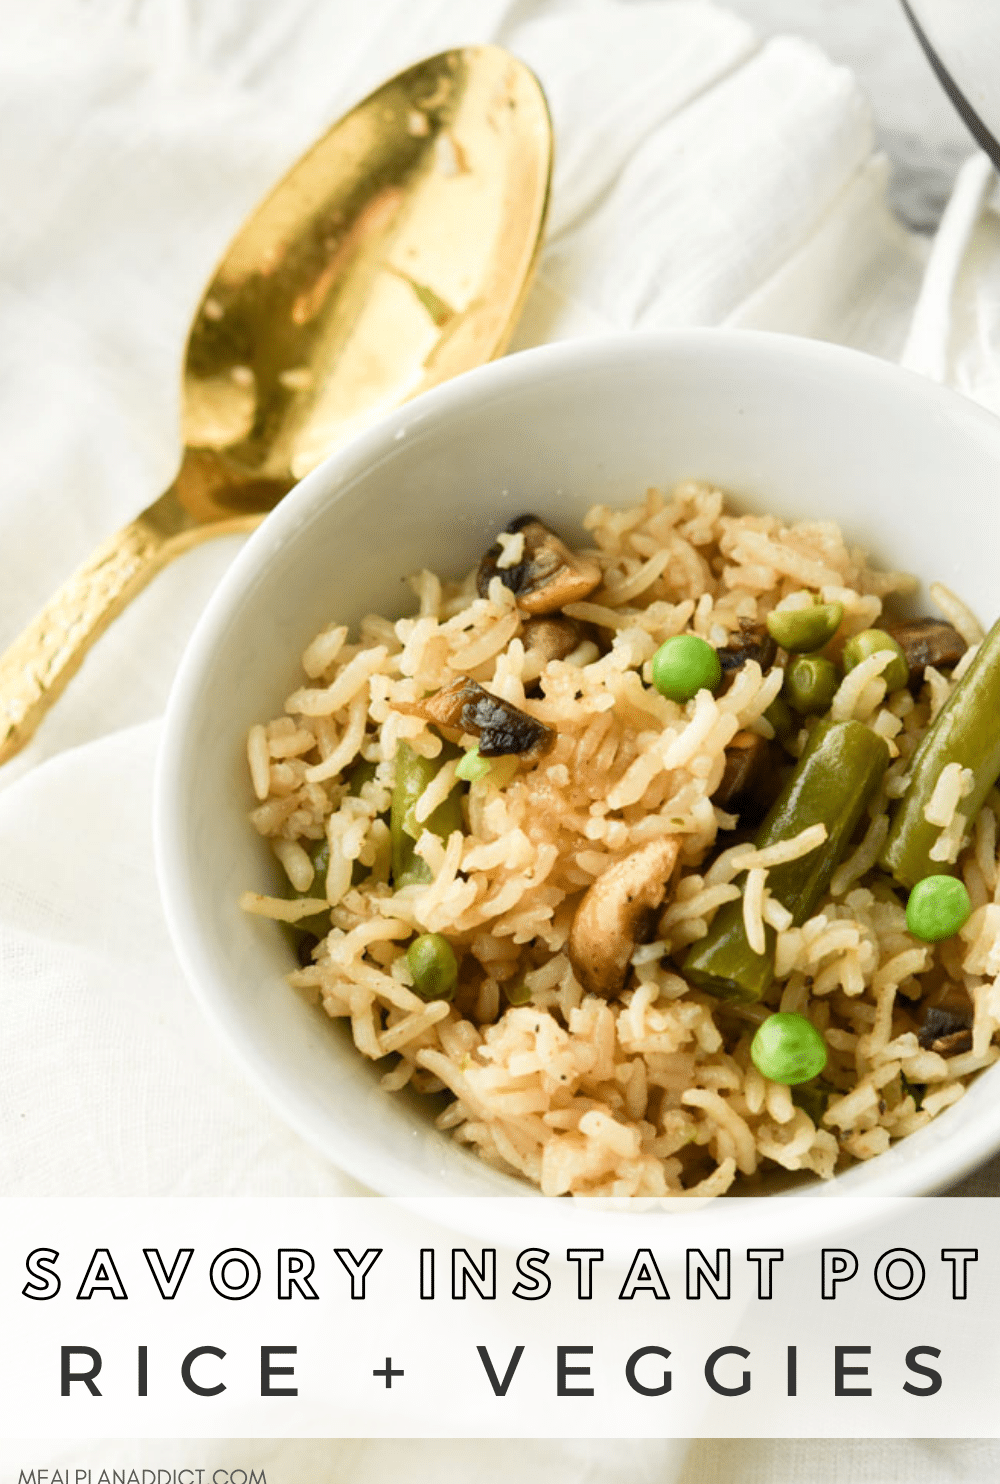 Rice and veggies pin for Pinterest